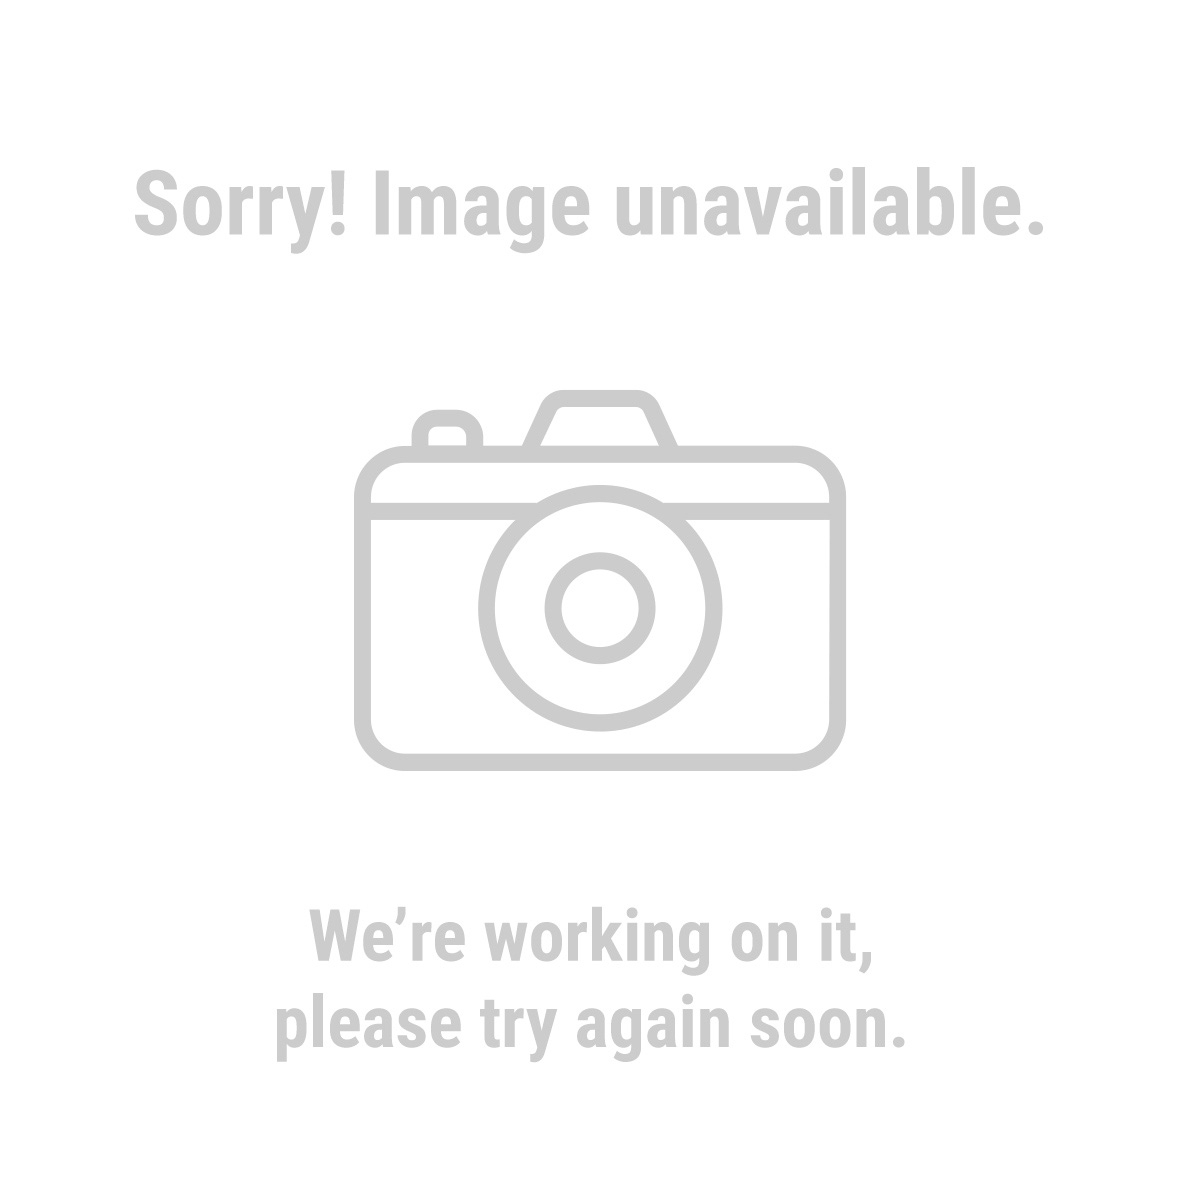 Pittsburgh® 61587 2 Piece 20° Offset & 45° Angle Long Reach Pliers